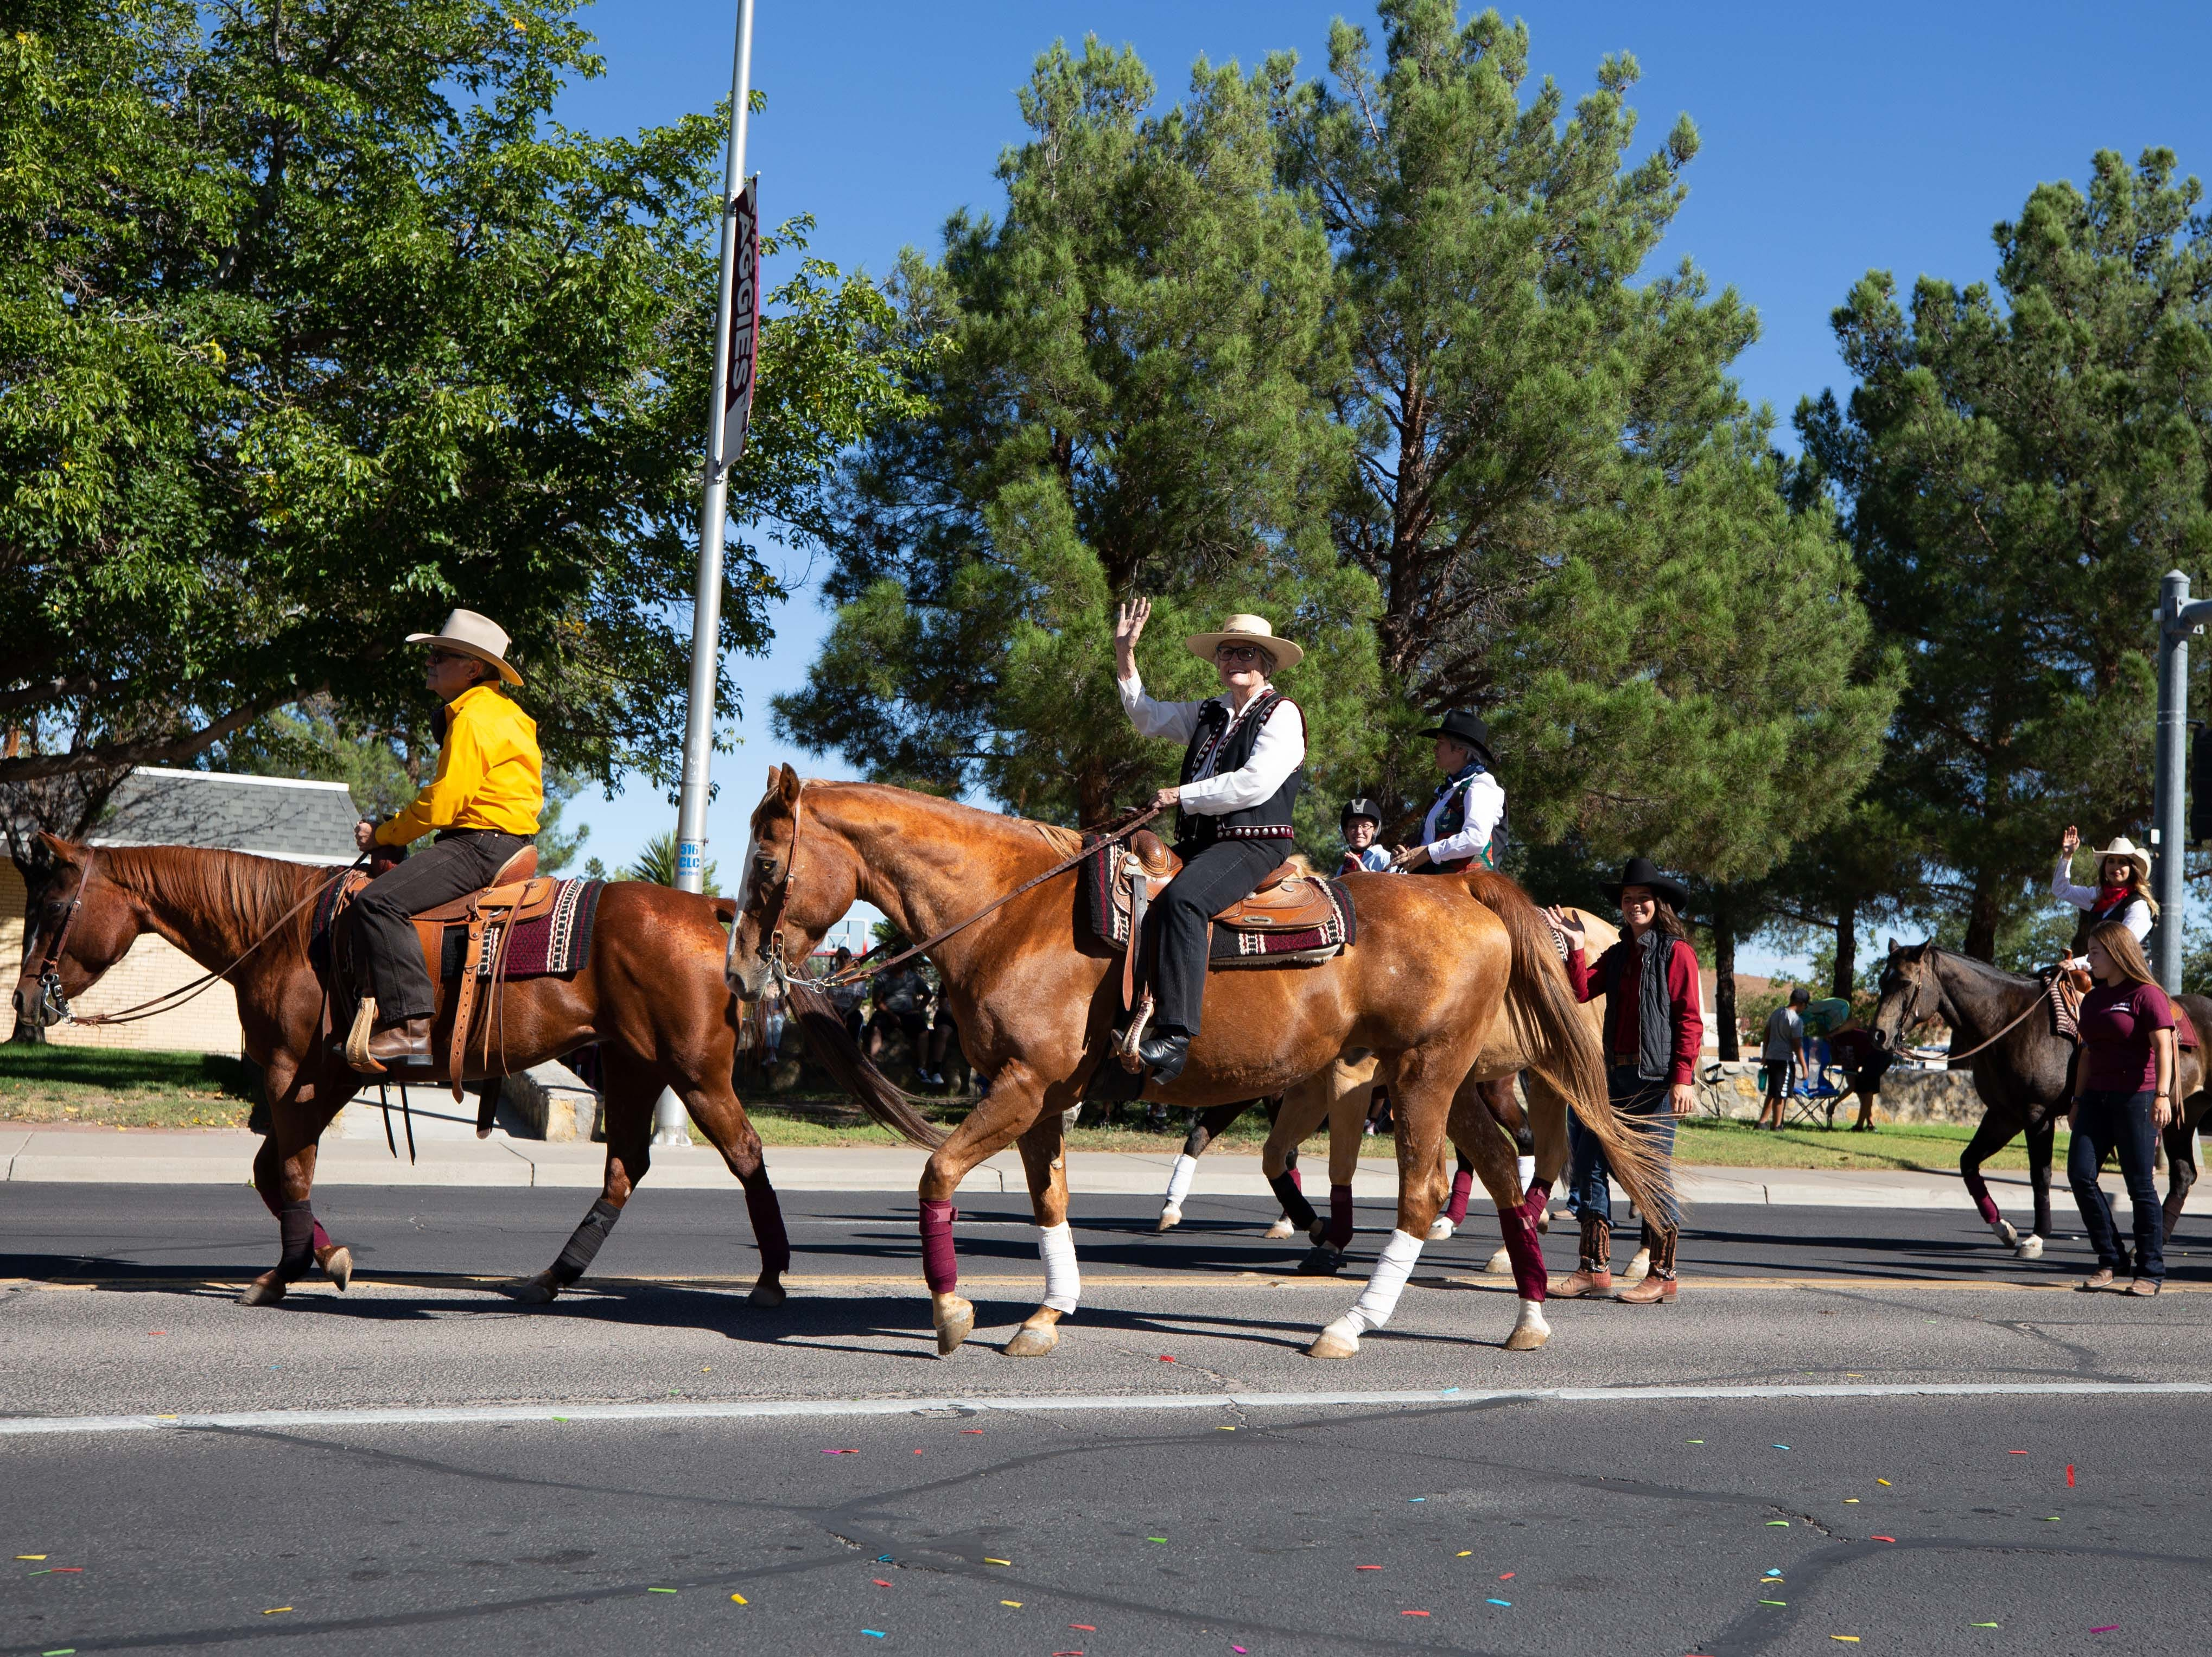 Dean Rolando Flores, Senator Mary Kay Papen and Allison Smith on horses at the NMSU Homecoming Parade on October 6, 2018.